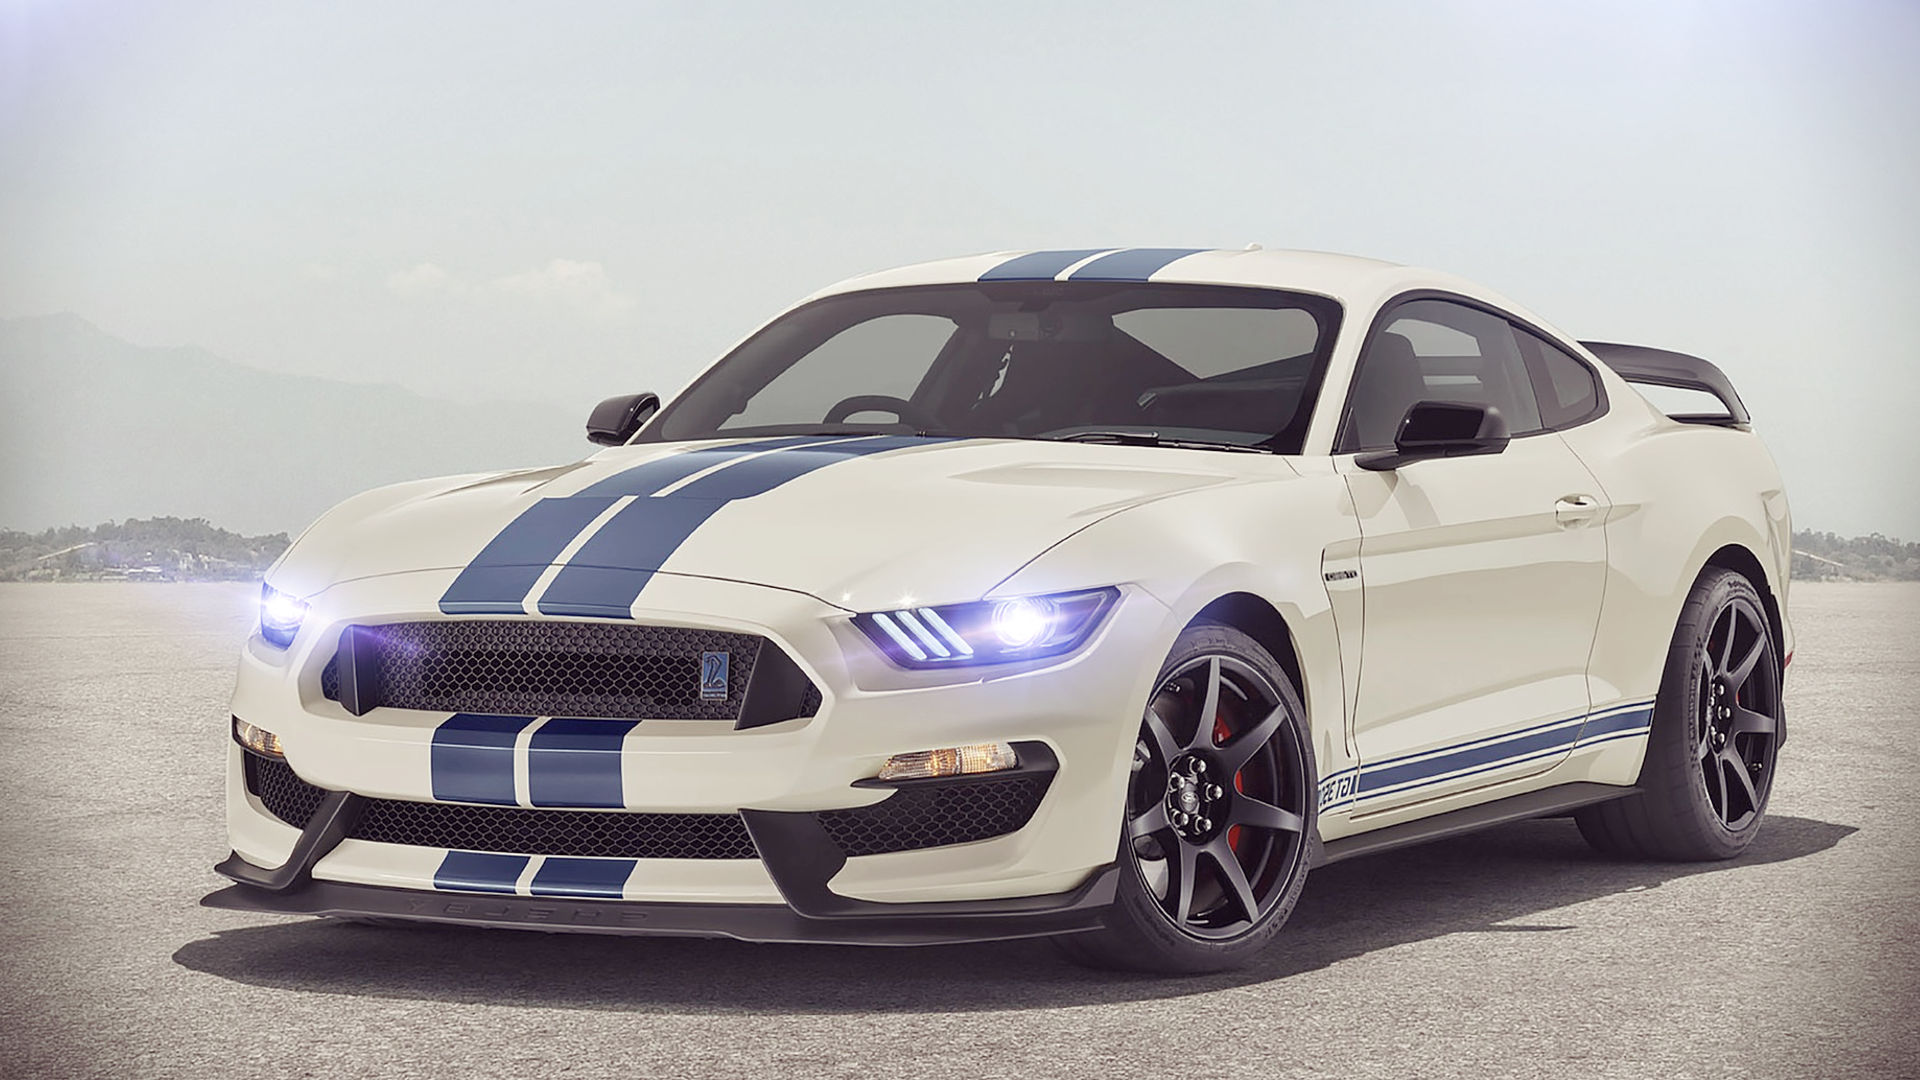 6th Generation Ford Mustang Maintenance Schedule